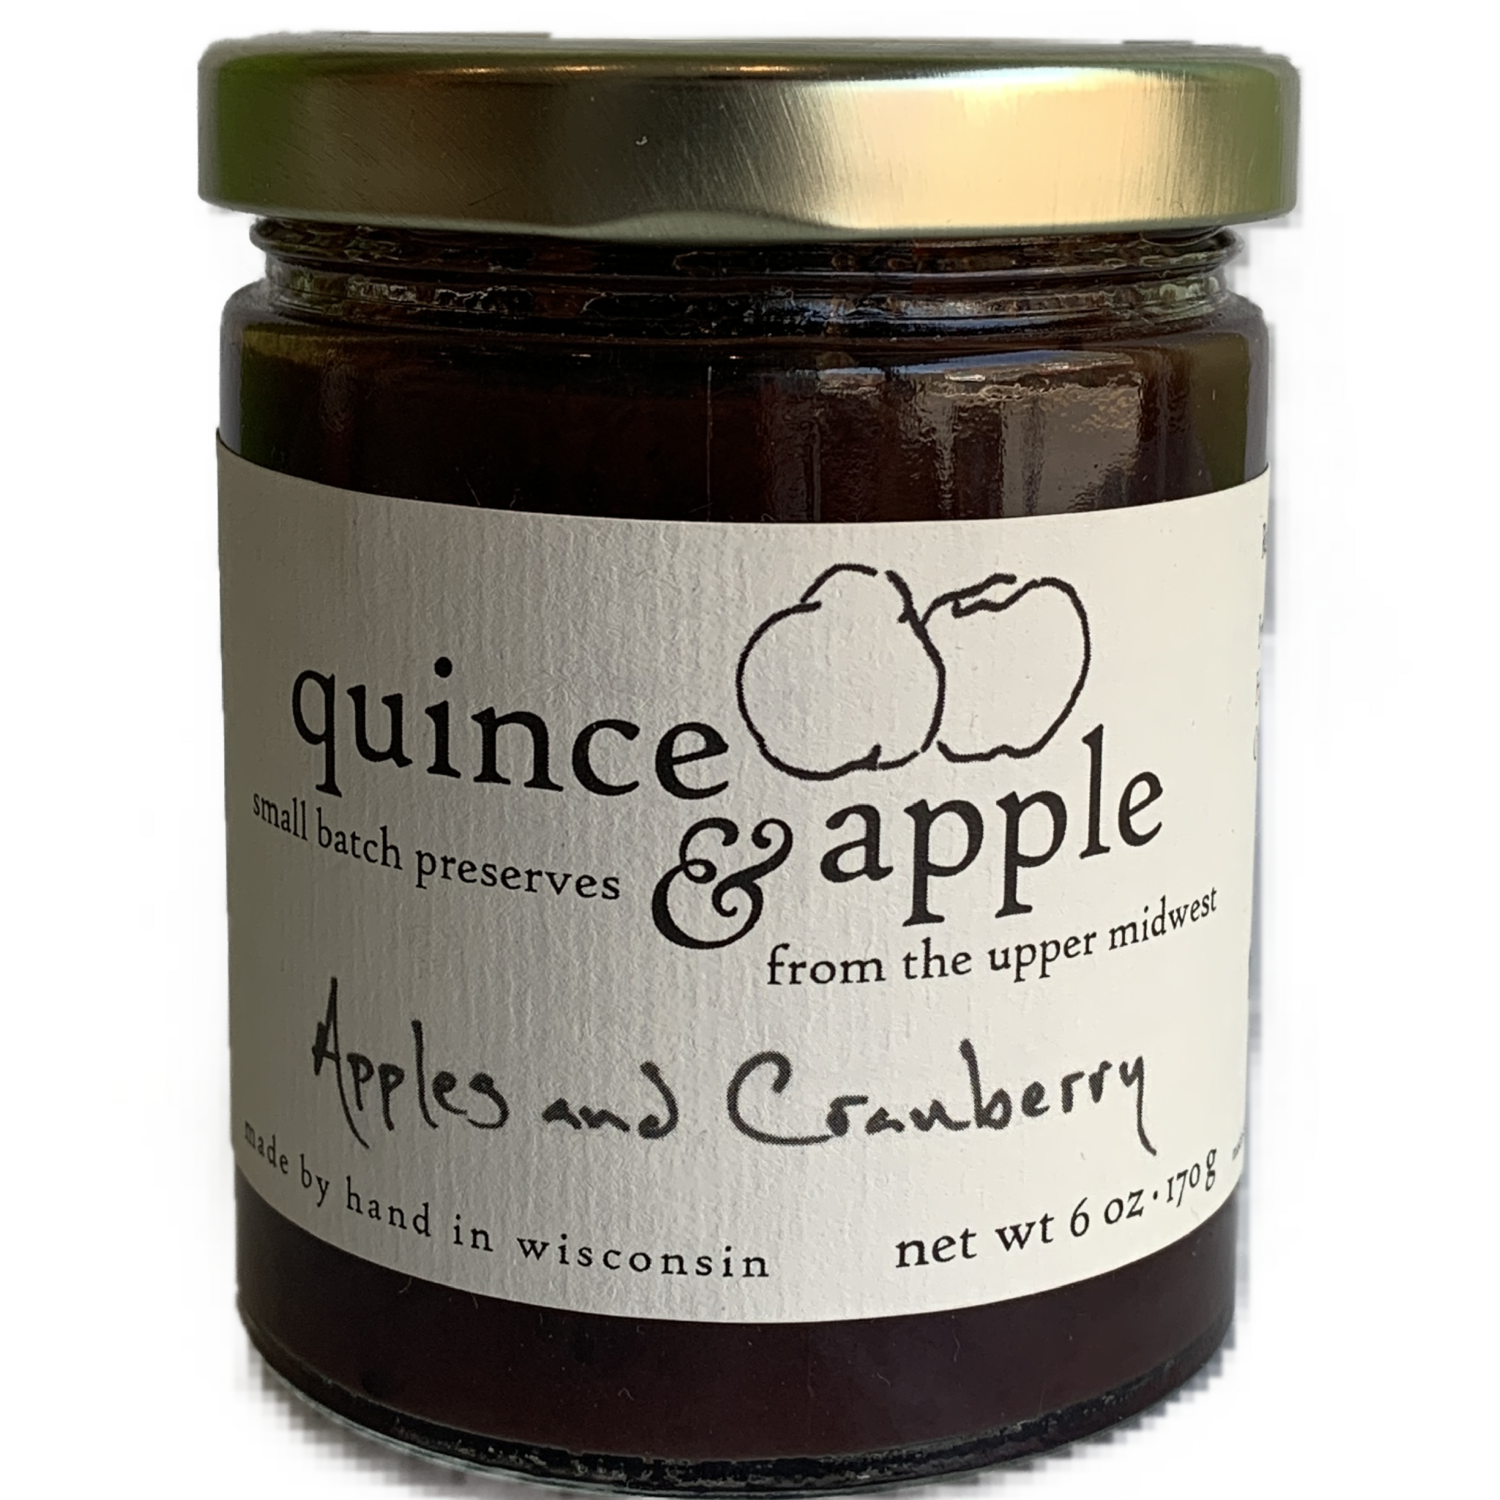 Quince & apple Apples and cranberry